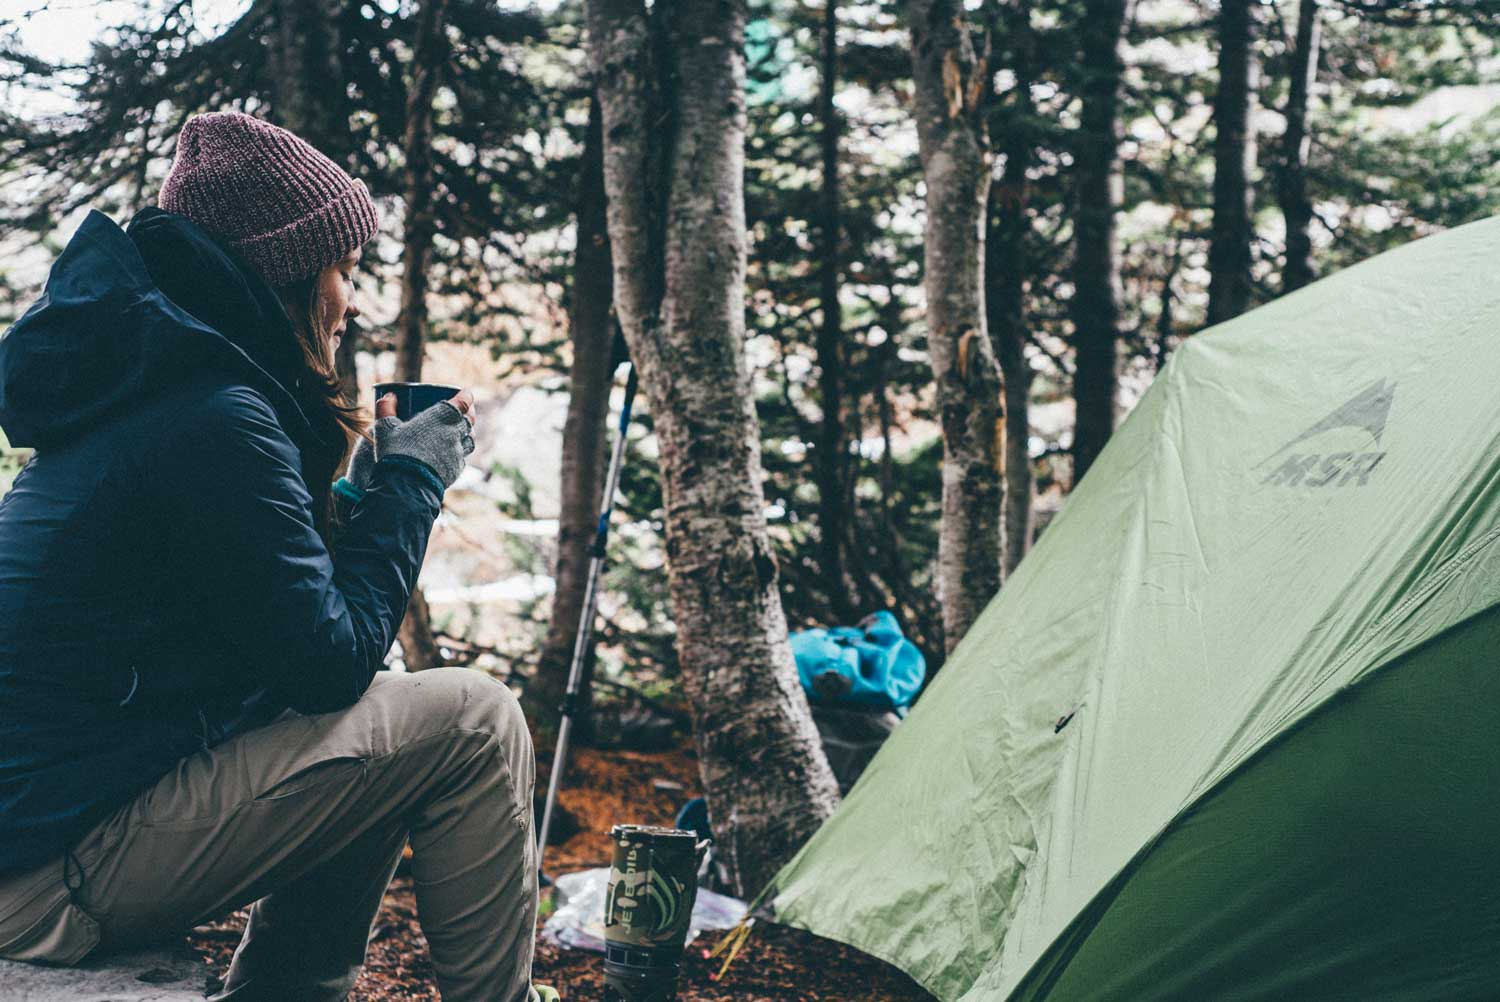 Camping & Backpacking tips for Couples